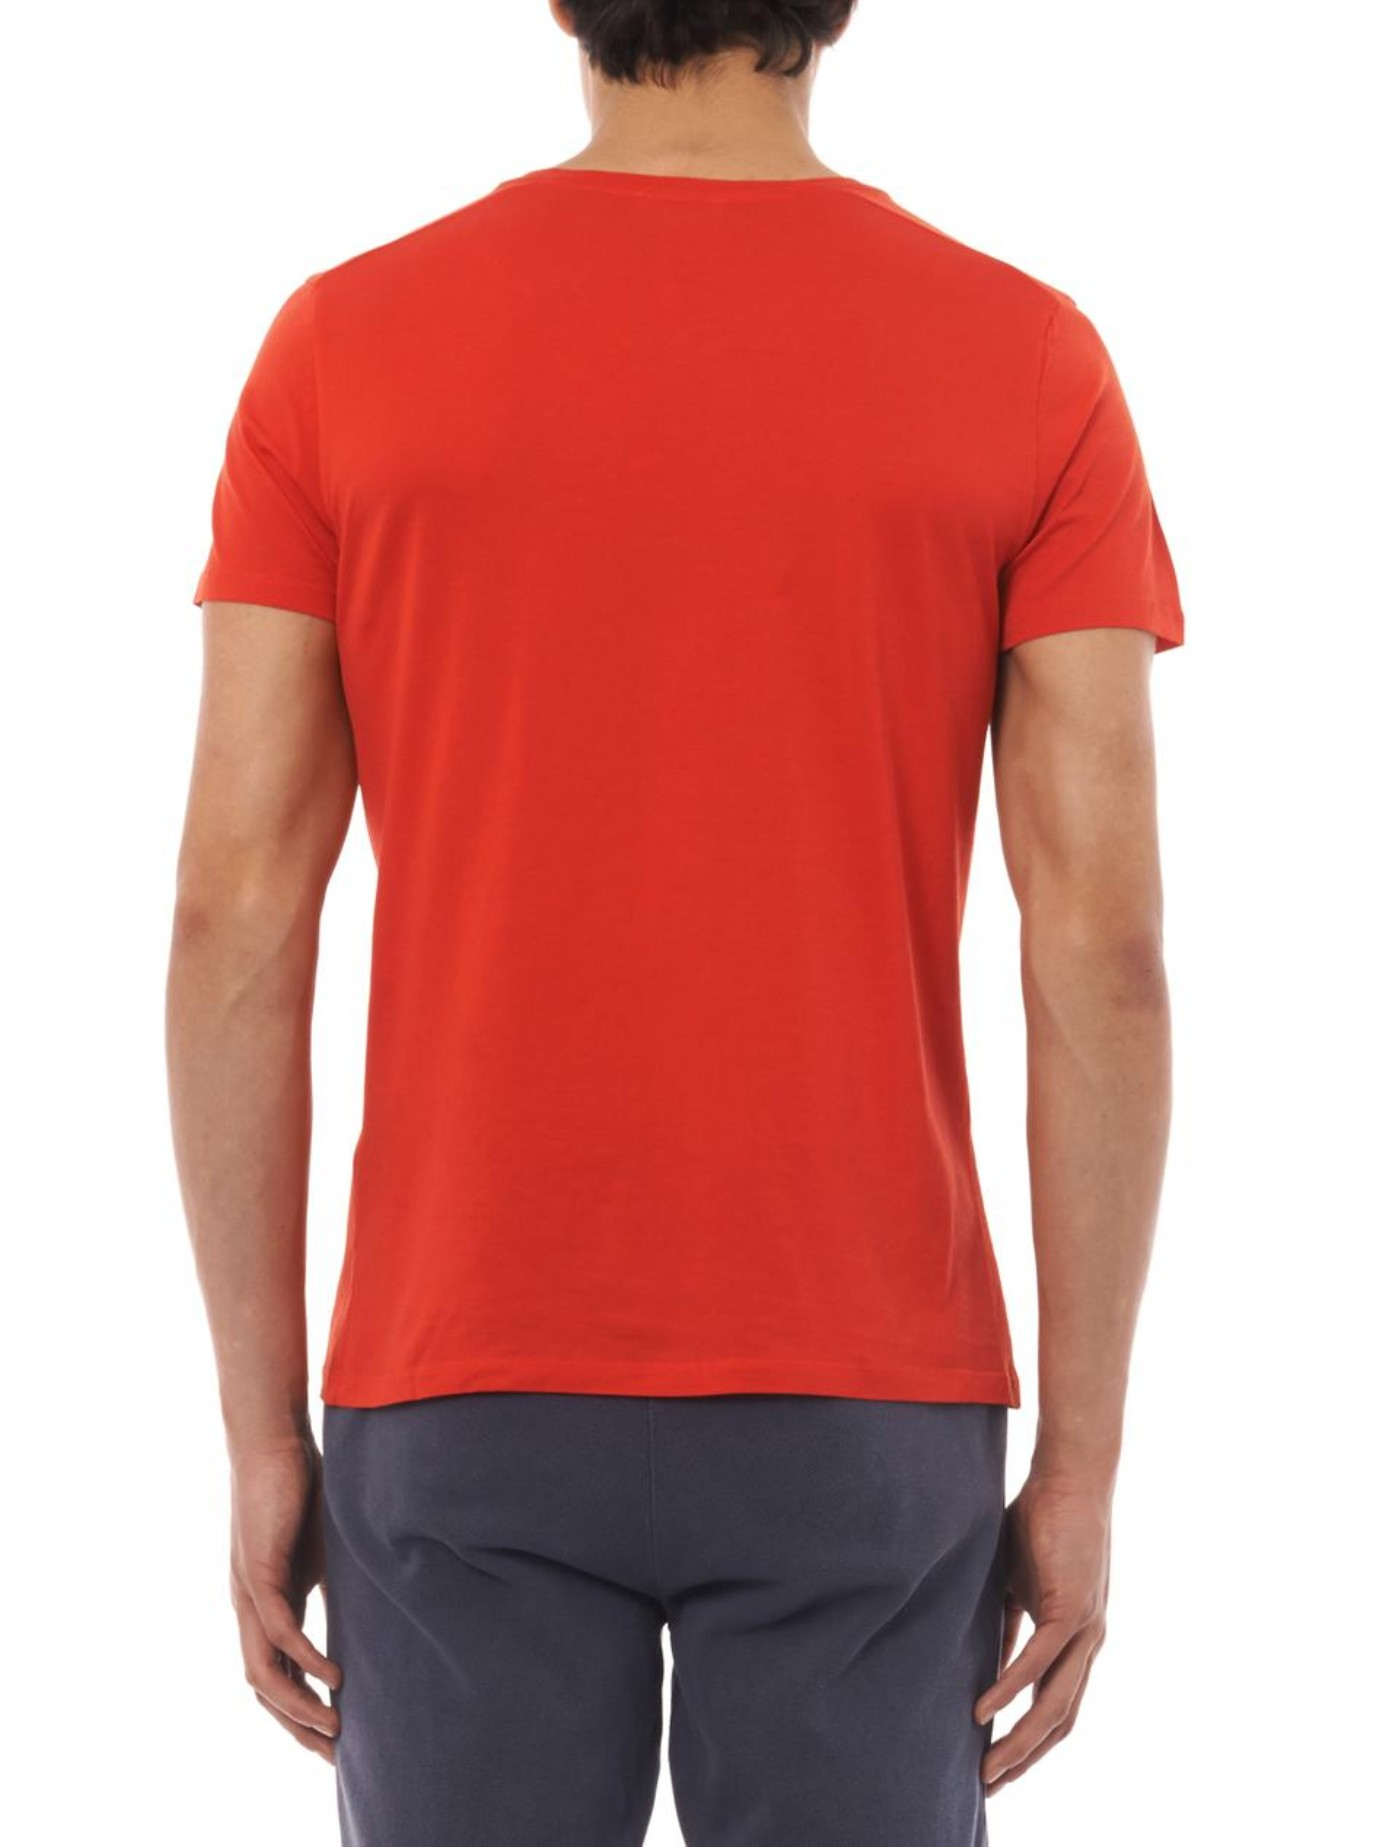 product red and red vintage t shirt Aviator duffel bags rifle cases & accessories red oxx  merchandise new red oxx gift cards top selling products.